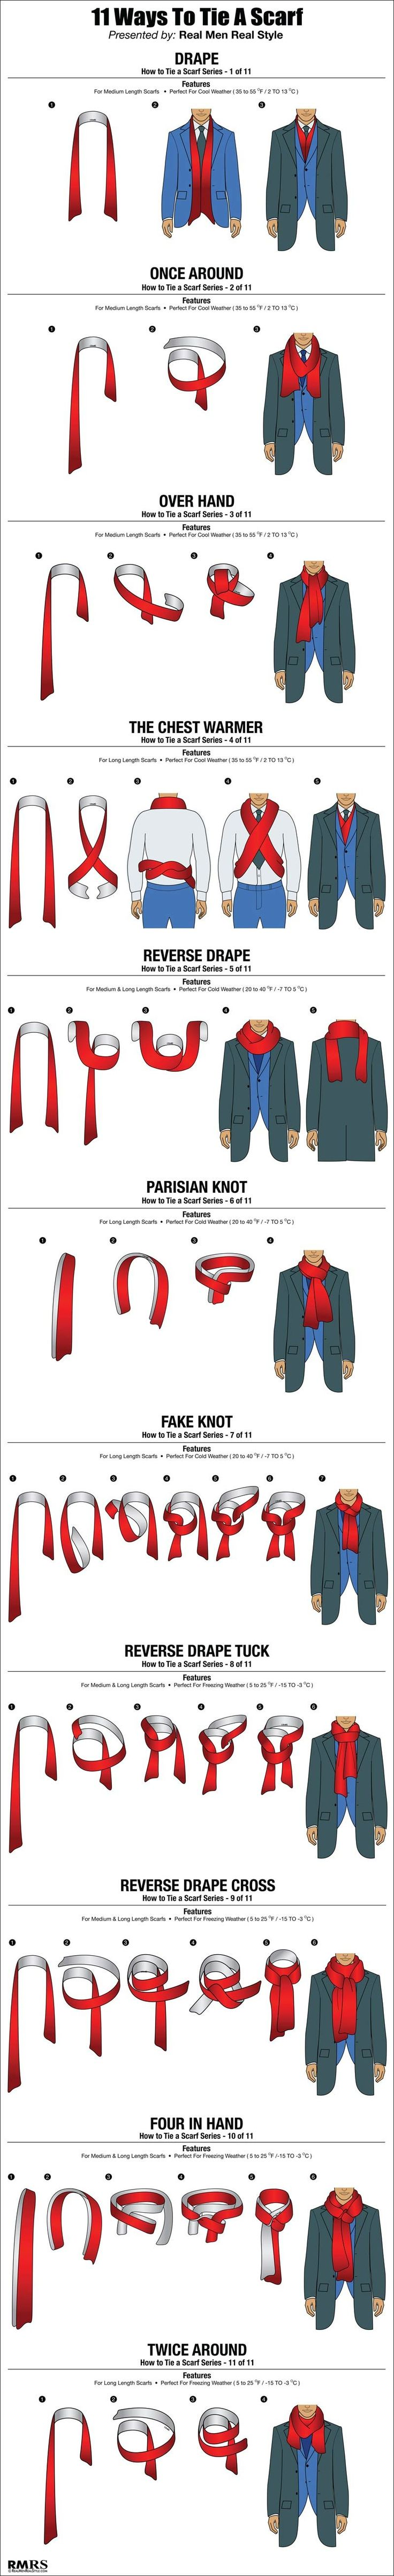 Scarf Tricks  While Shown With A Male Figure, These Ties Would Work Just As